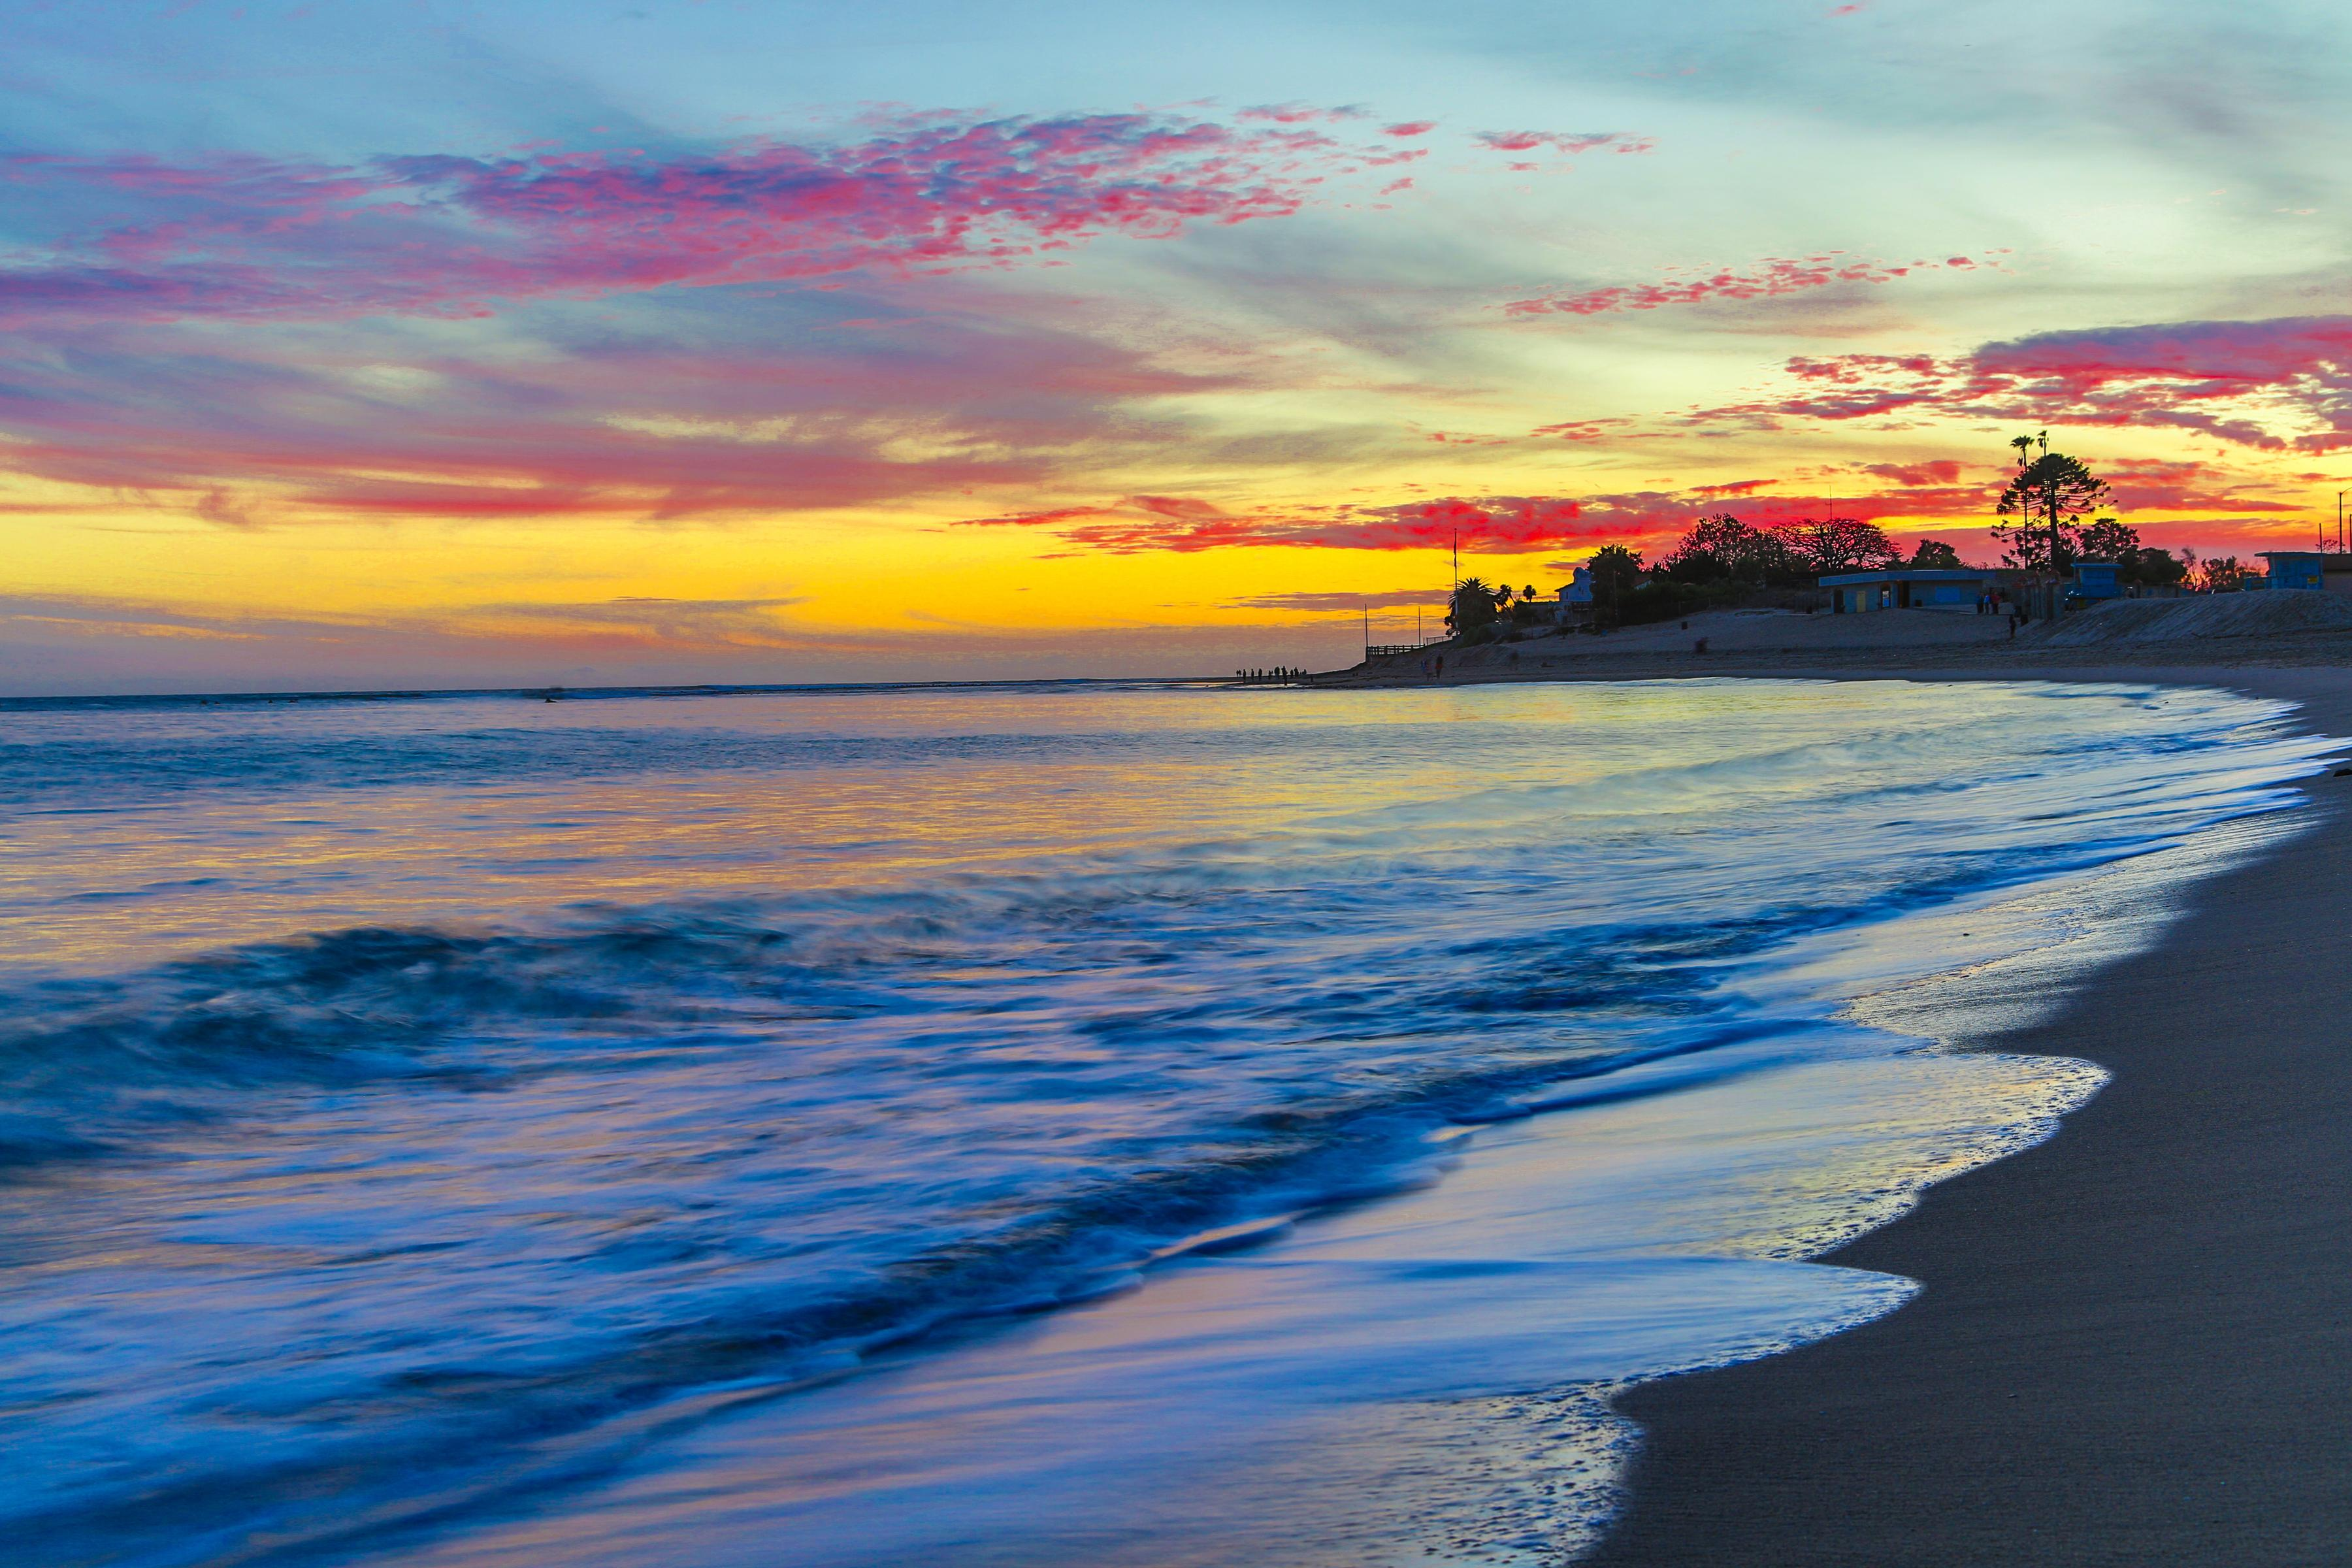 Discover some of Southern California's best beaches within a short drive.